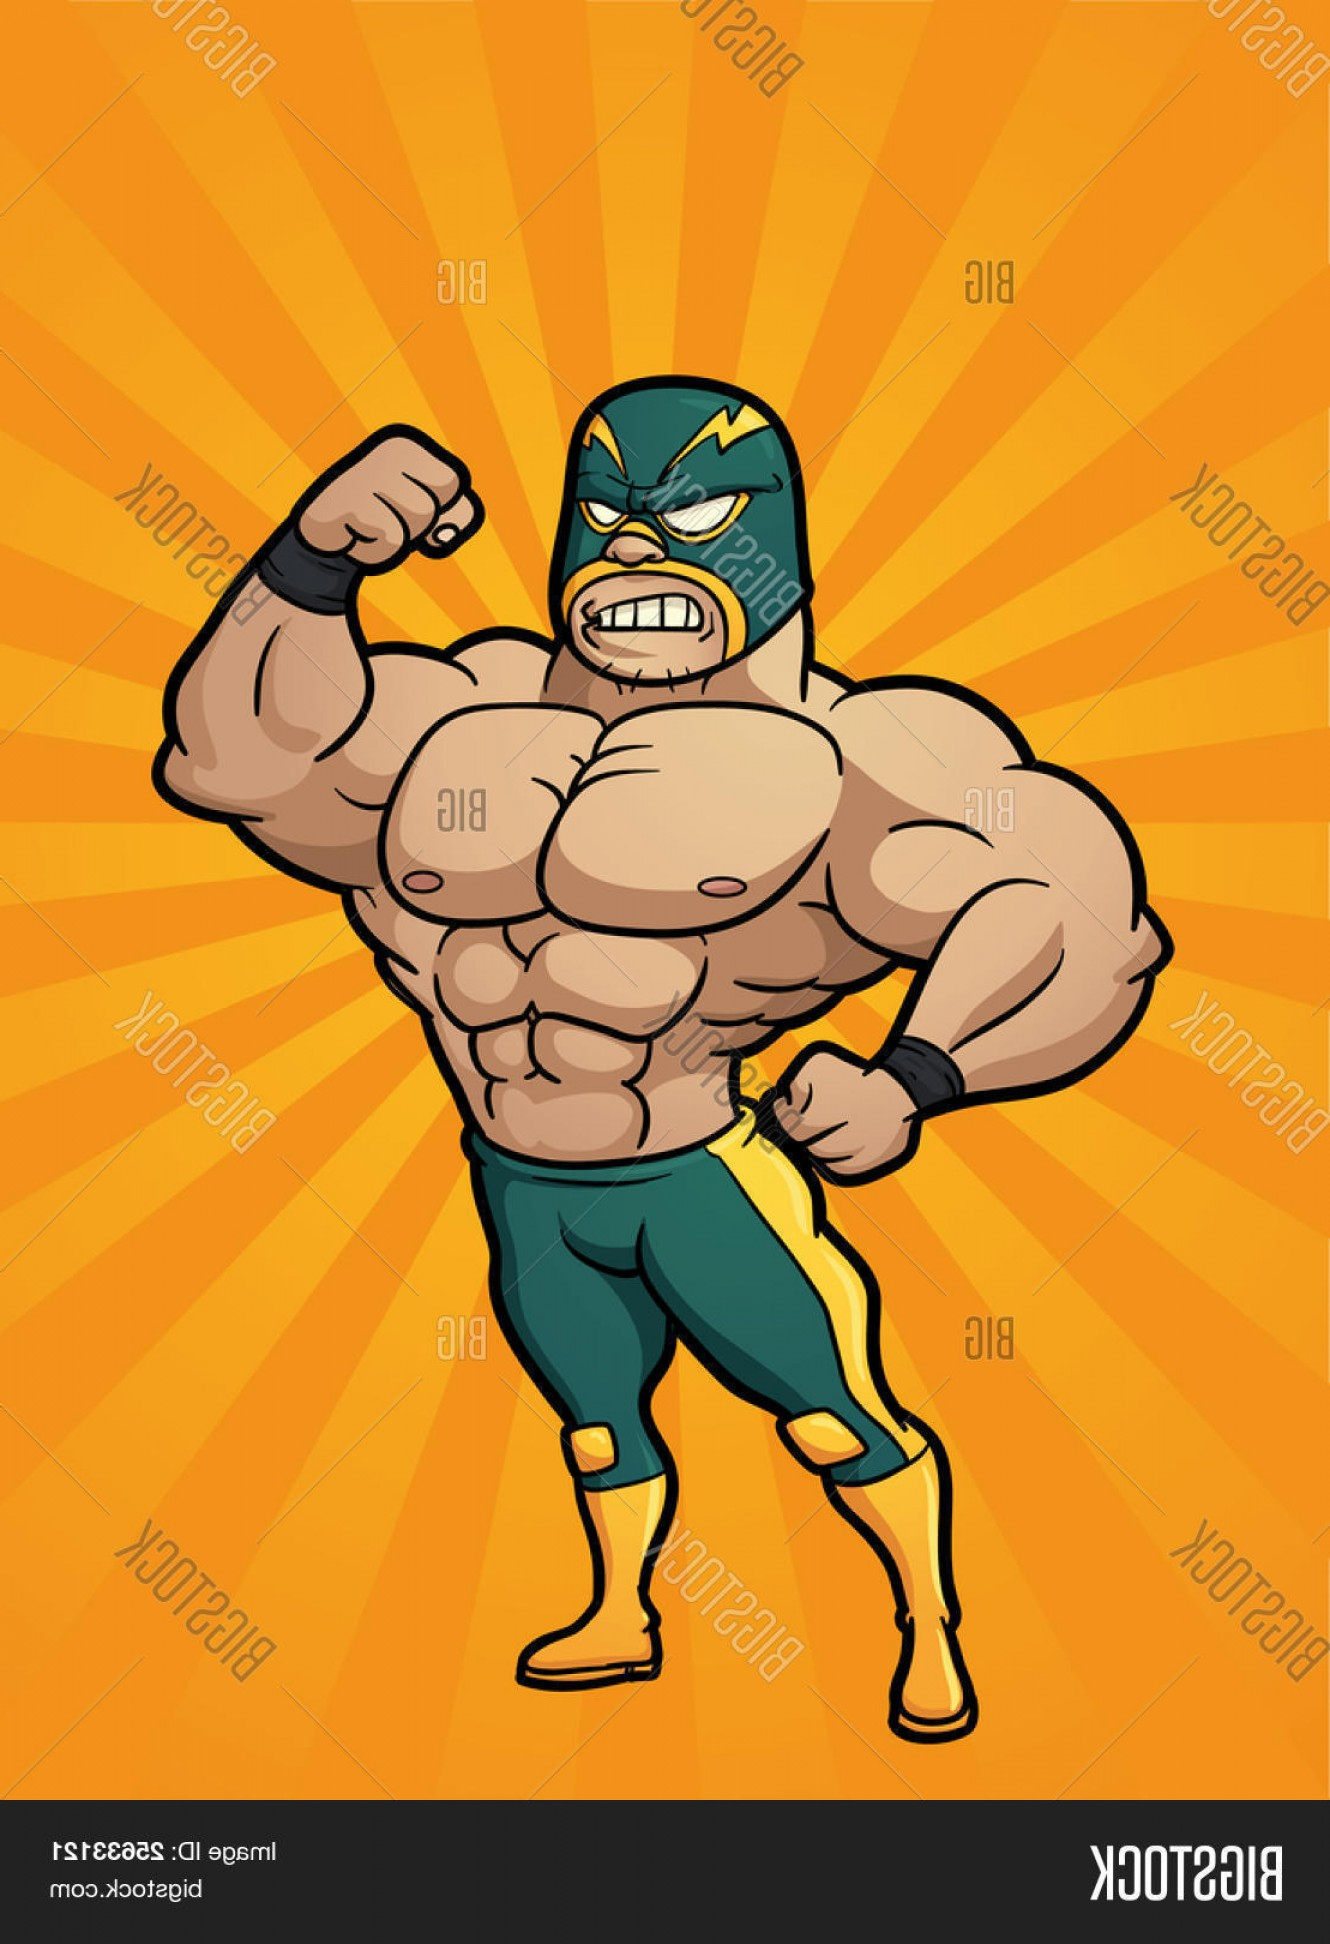 Vector Image Of Strong Wrestler: Stock Vector Strong Cartoon Mexican Wrestler Vector Illustration With Simple Gradients Character And Background